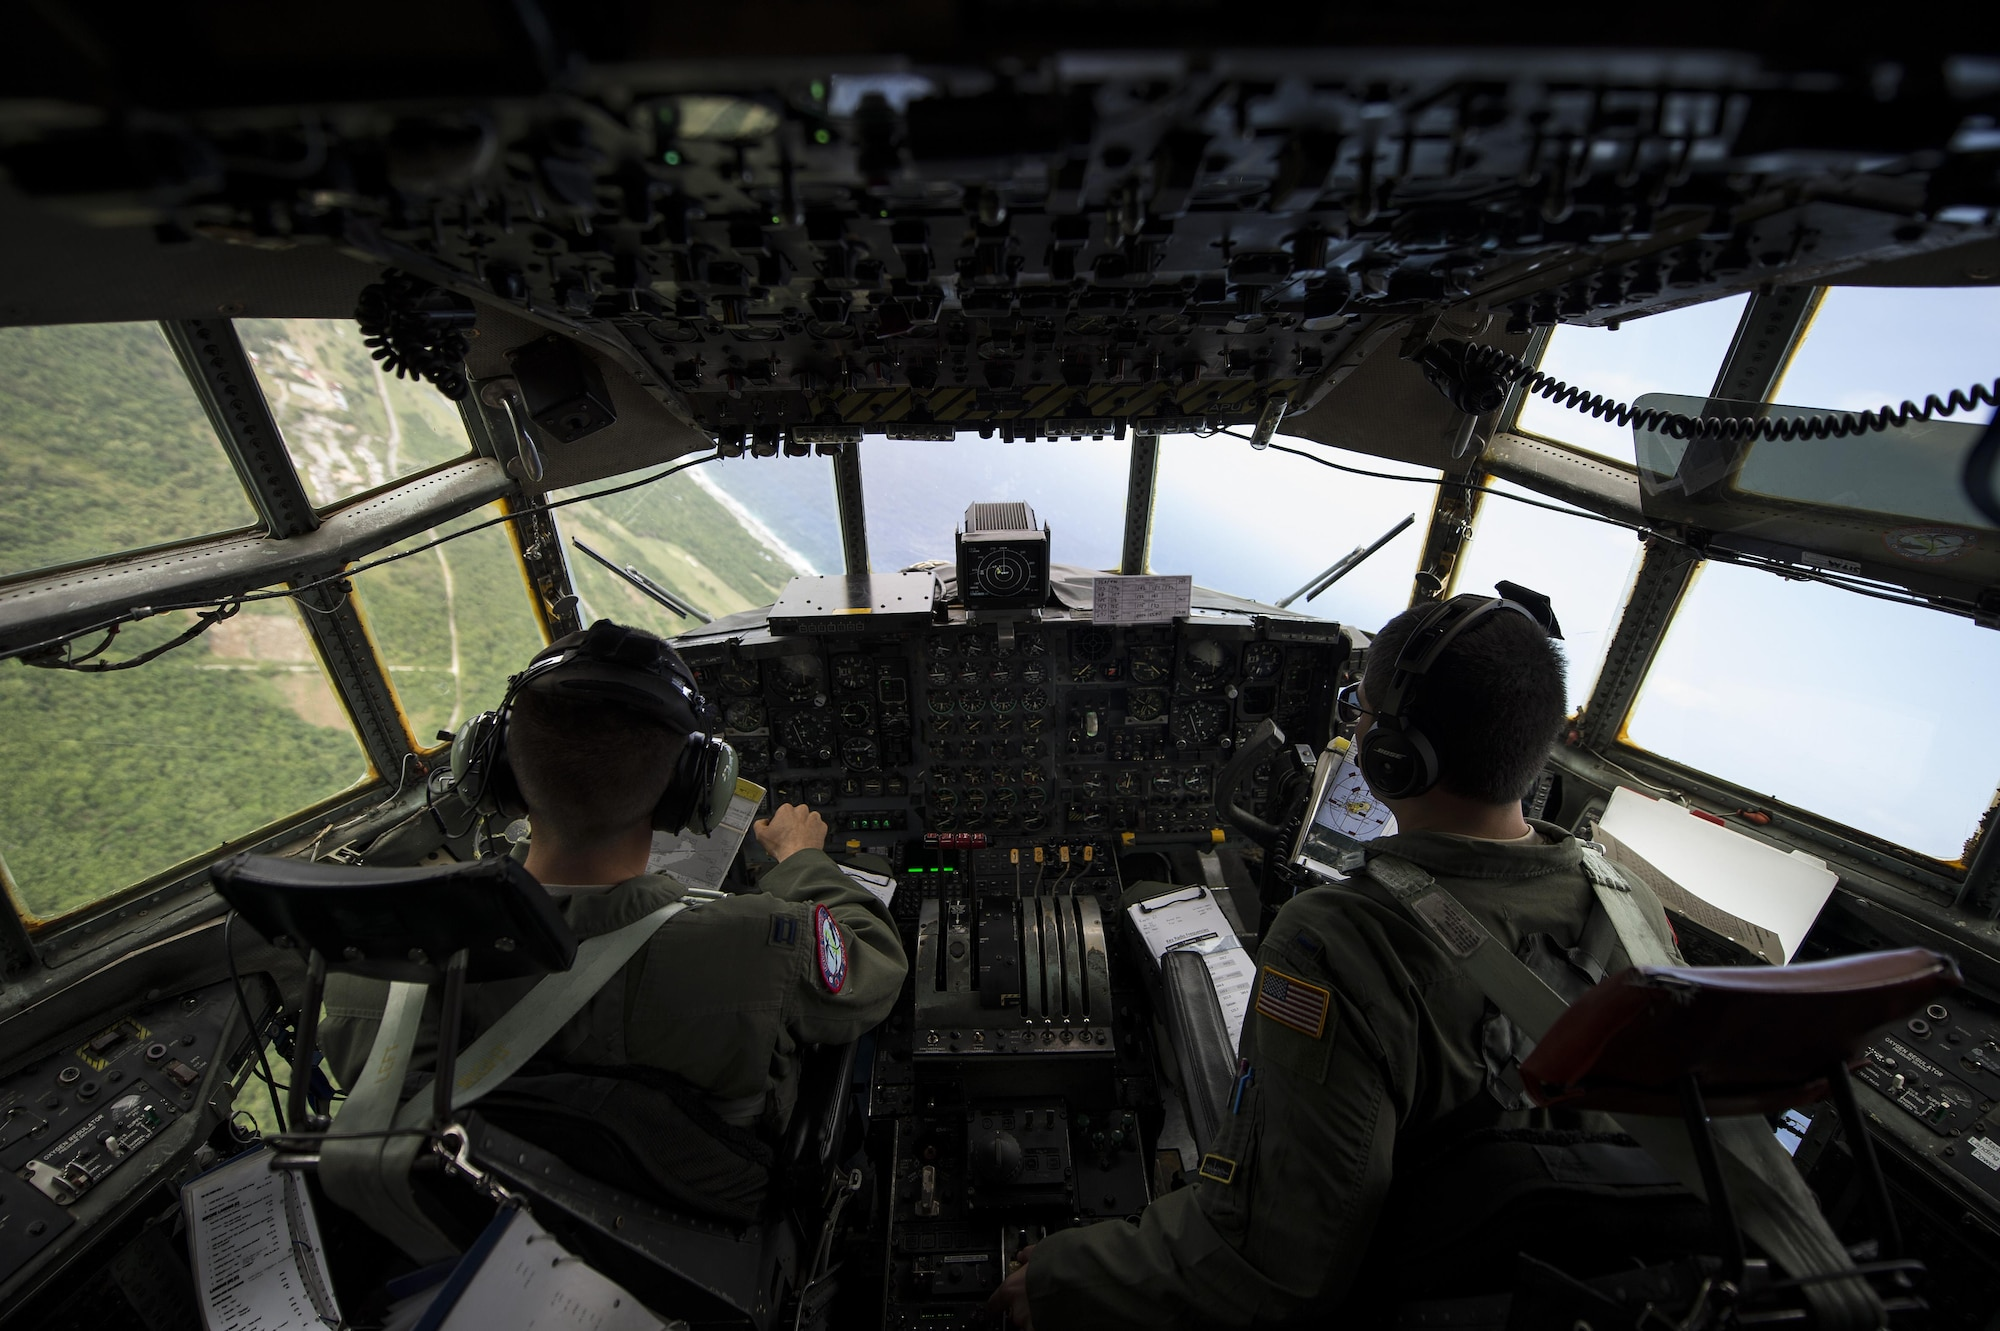 Capt. Ian Haig and 1st Lt. Eric Zane fly over Rota, Northern Mariana Islands, after delivering cargo used in a humanitarian assistance and disaster relief training event Feb. 15, 2015, during exercise Cope North 15. The exercise enhances humanitarian assistance and disaster relief crisis response capabilities between six nations and lays the foundation for regional cooperation expansion during real-world contingencies in the Asia-Pacific Region. Haig and Zane are 36th Airlift Squadron C-130 Hercules pilots. (U.S. Air Force photo/Tech. Sgt. Jason Robertson)